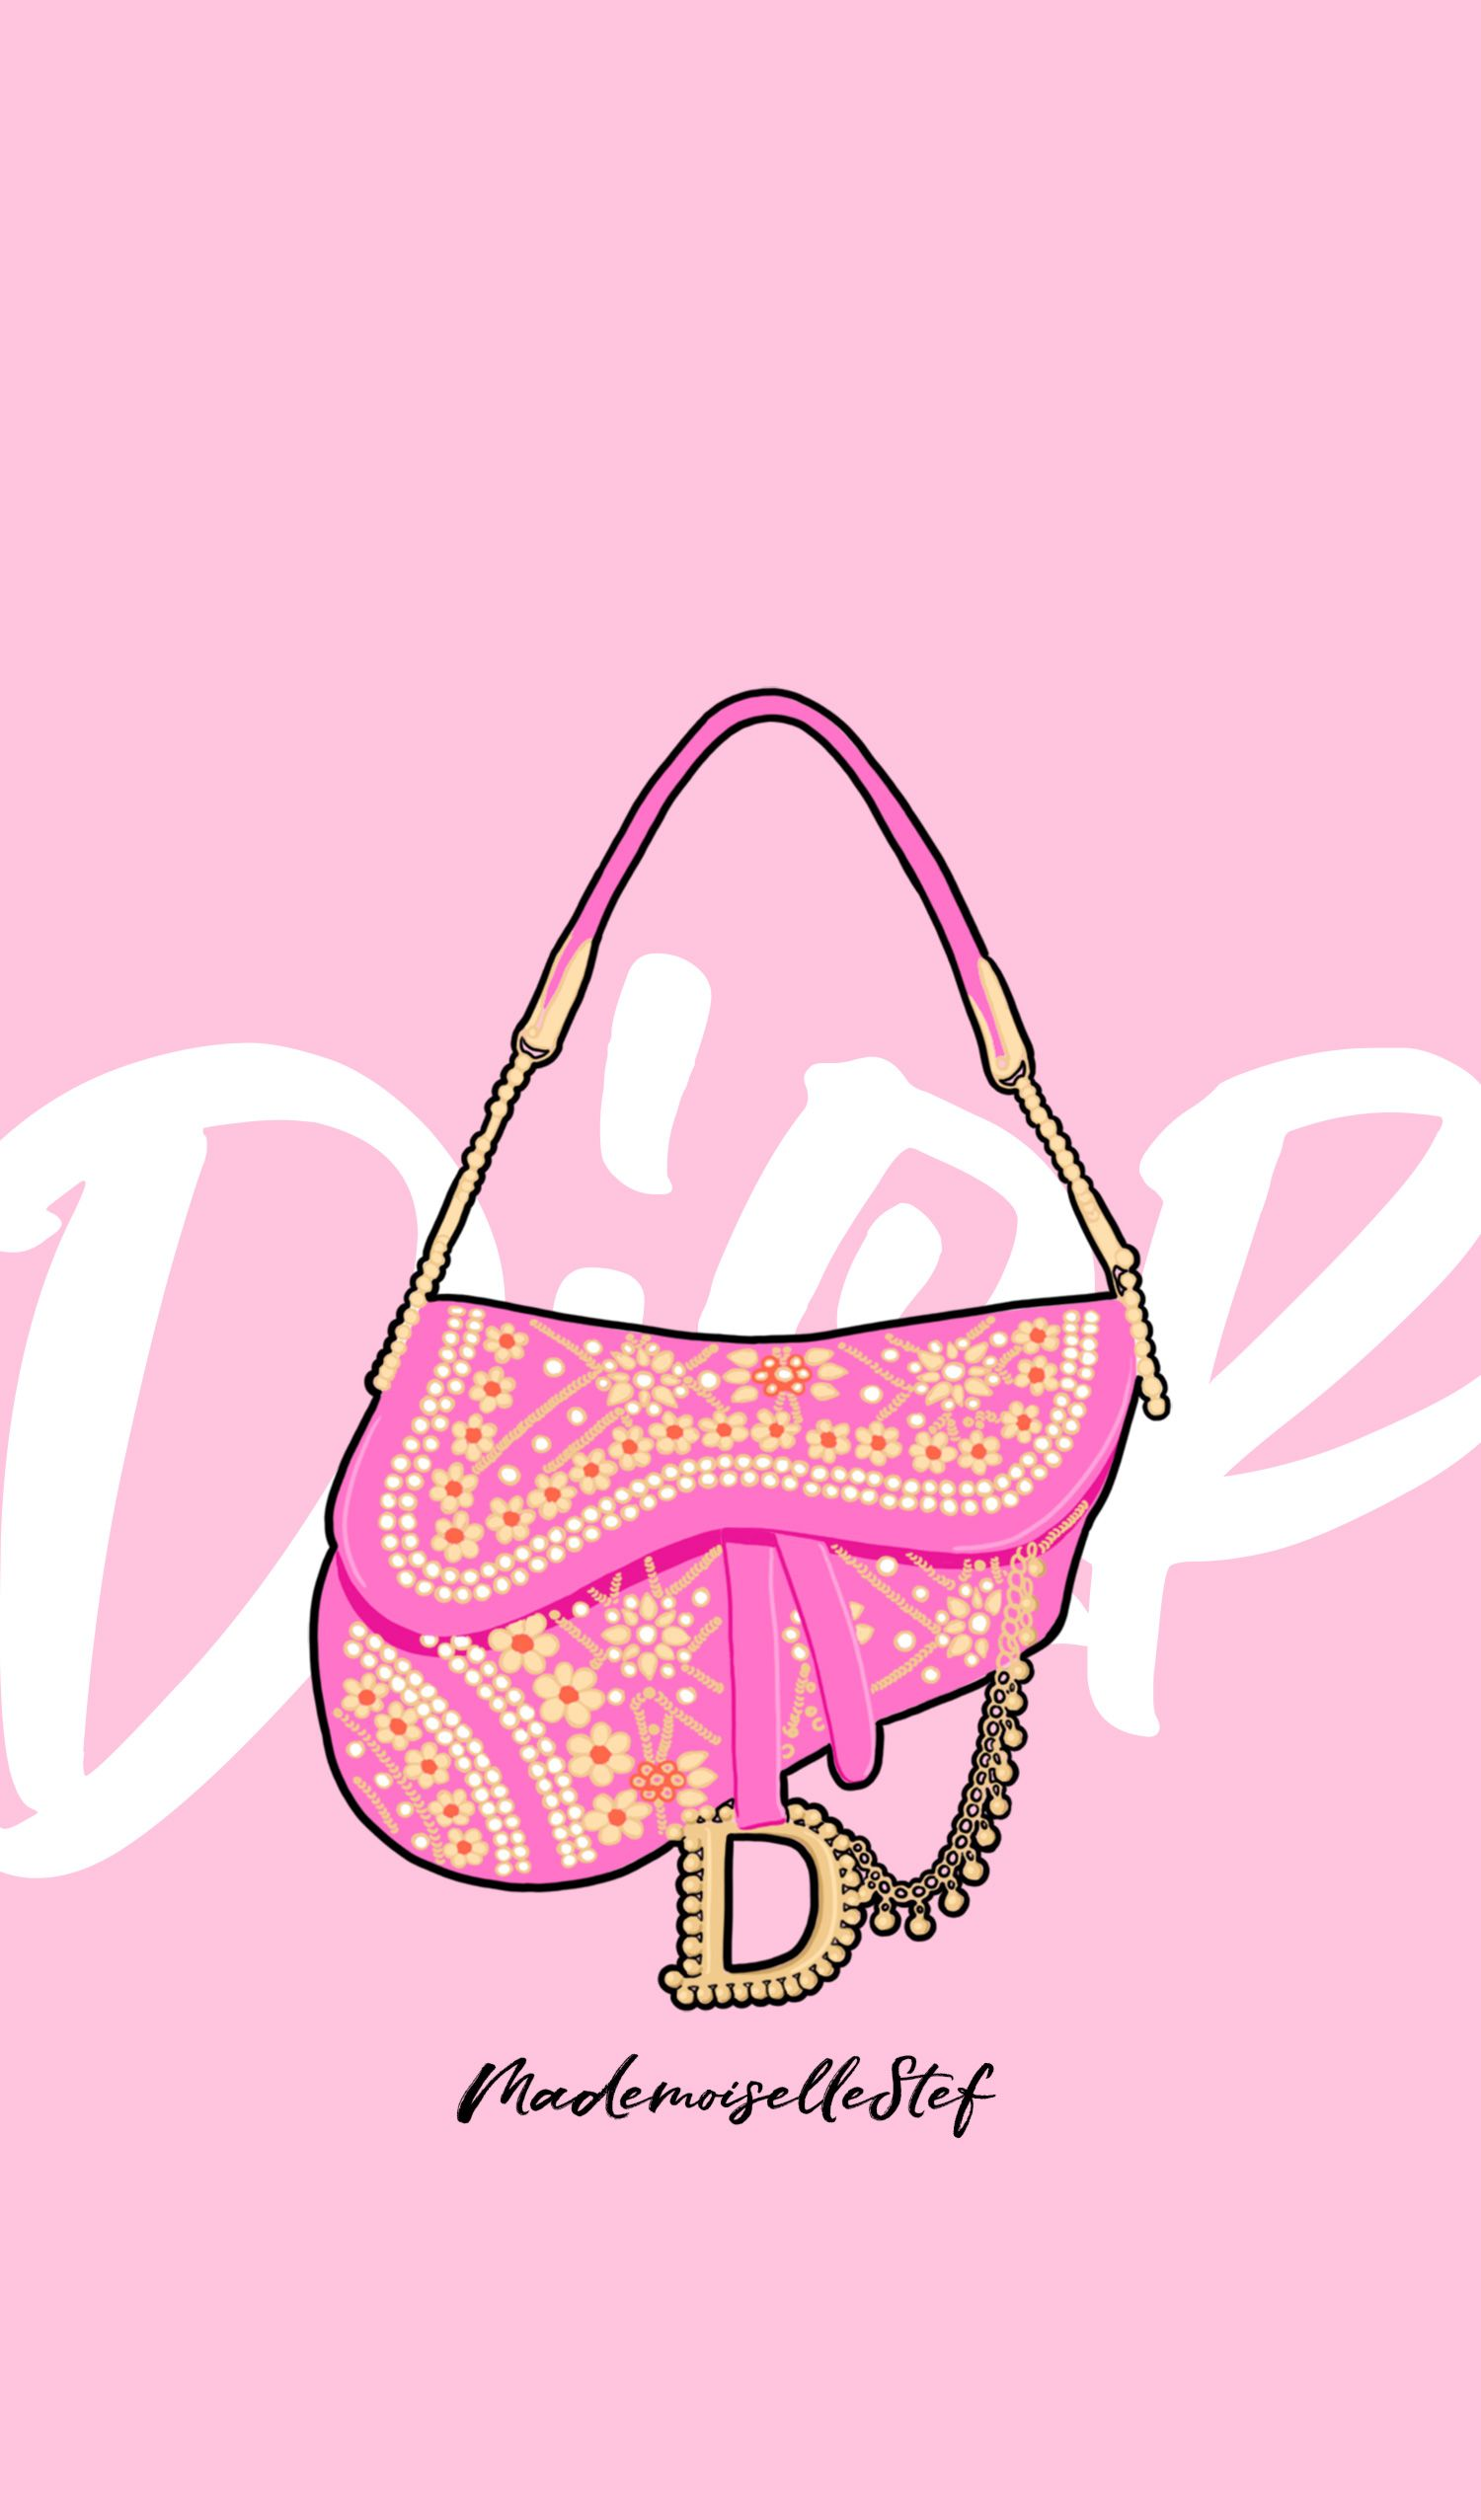 Wallpaper Dior saddle bag I fond d'écran Dior I Dior